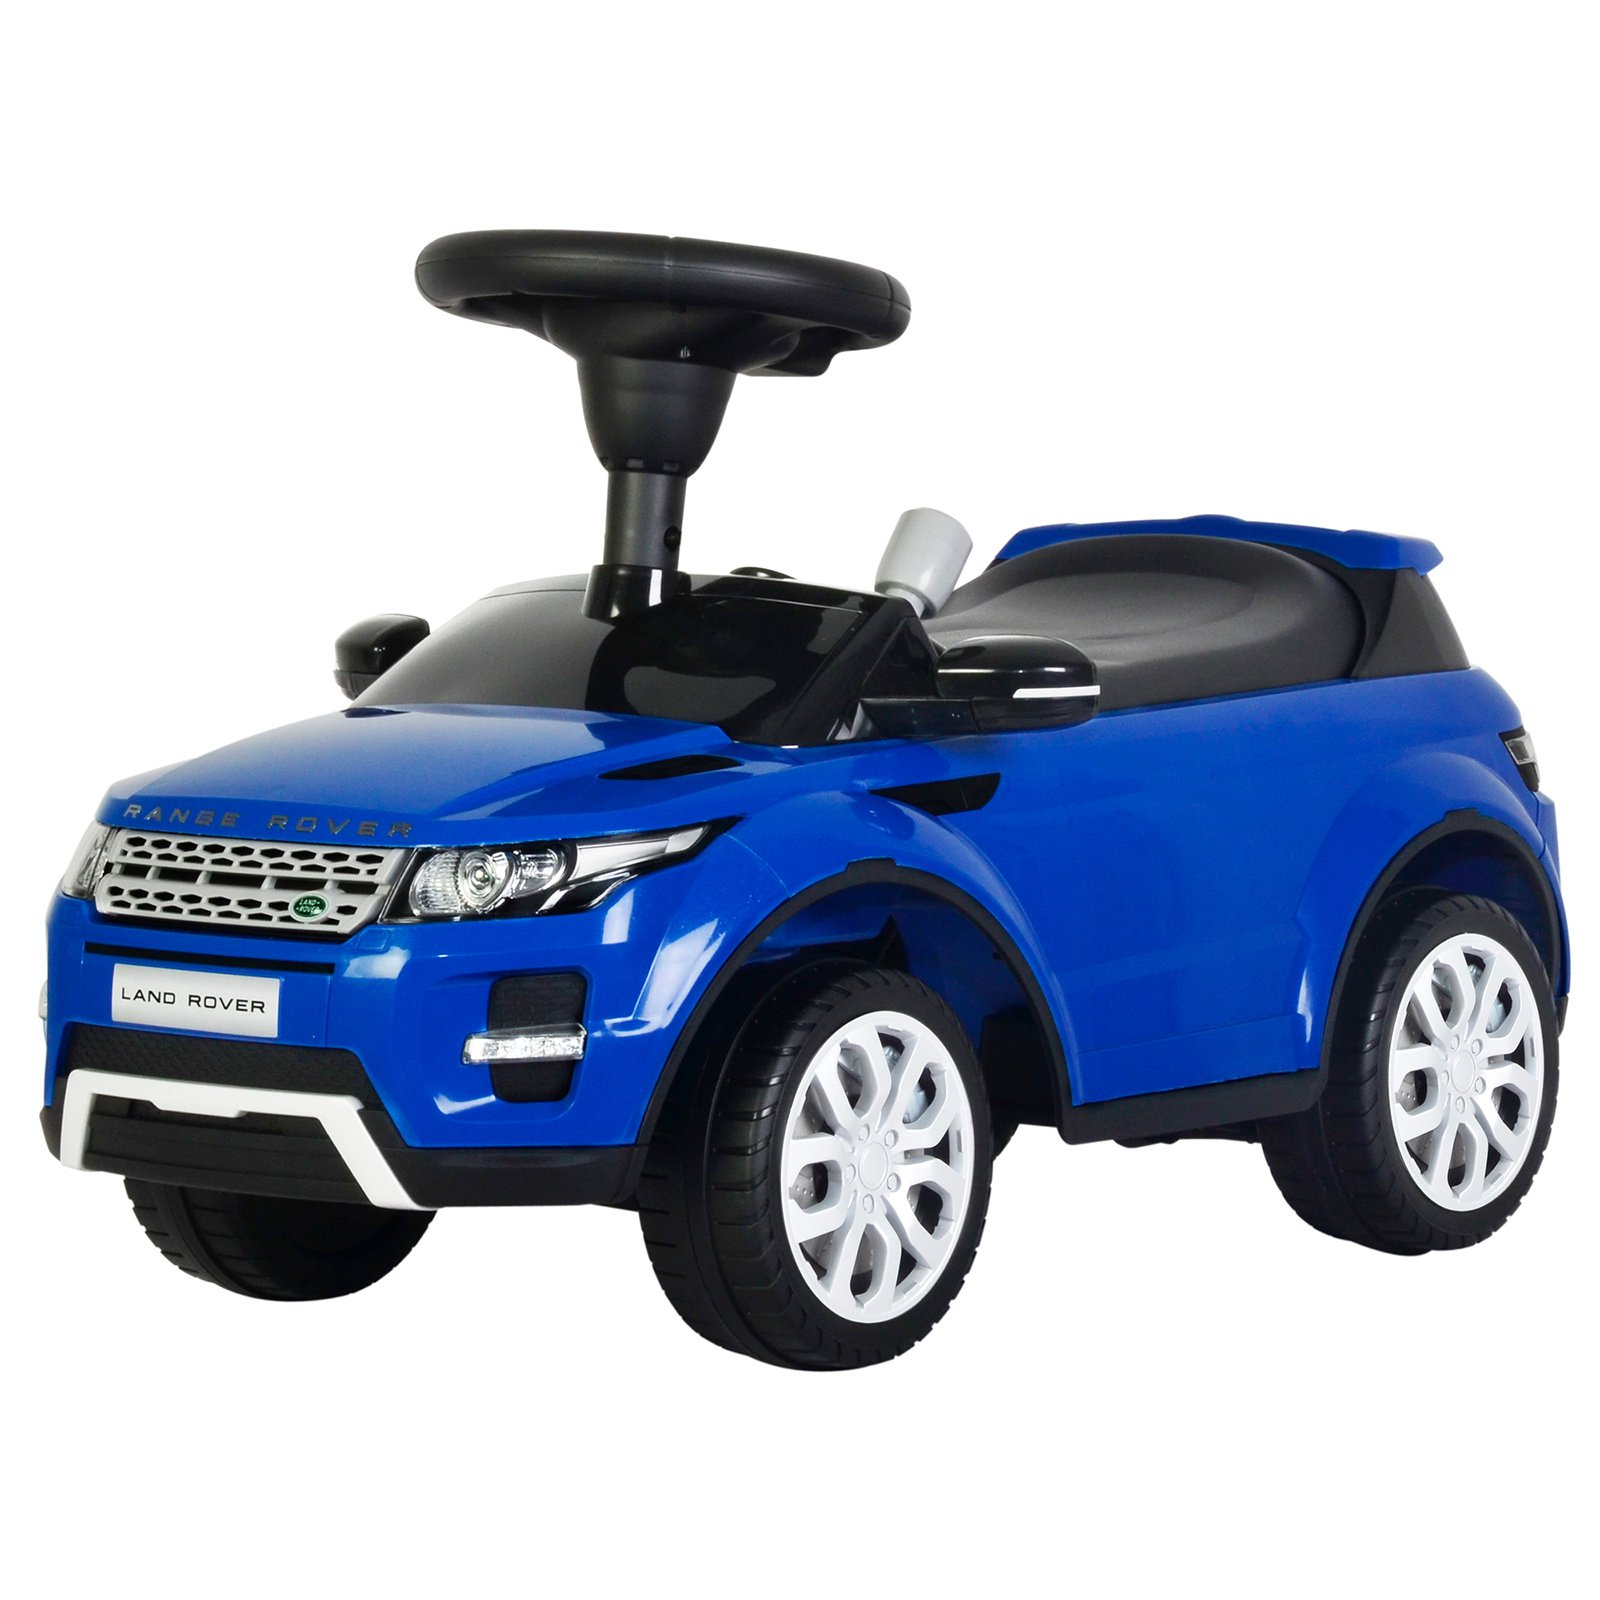 Best Ride on Cars Range Rover Push Car Walmart